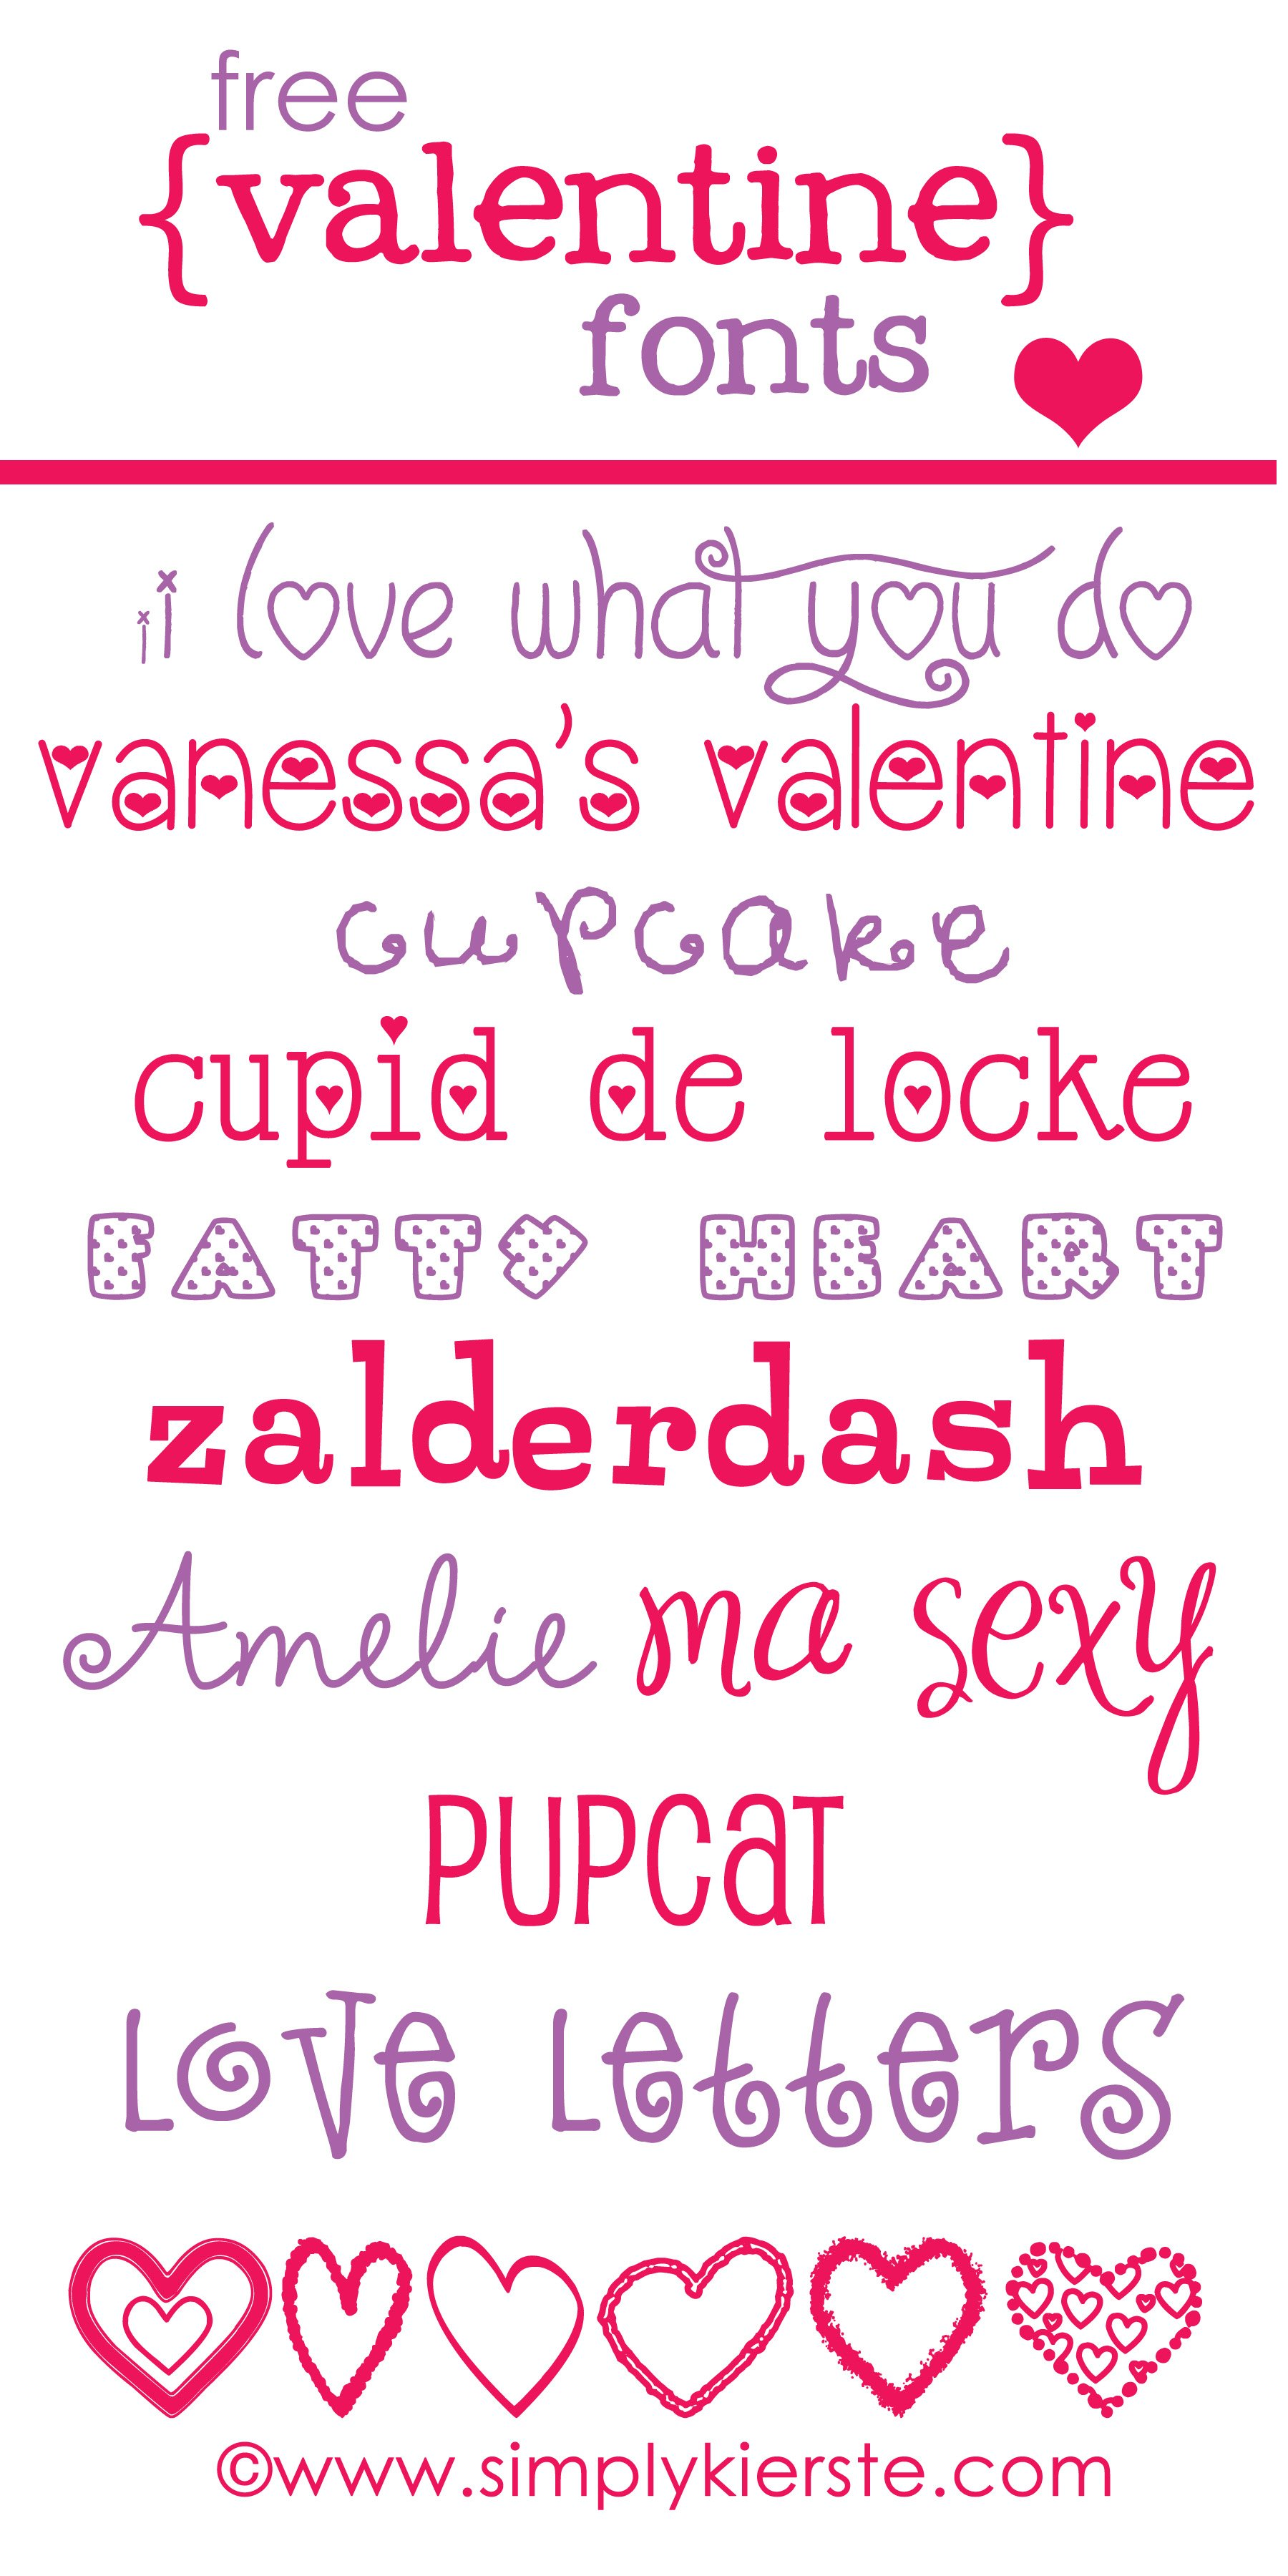 Favorite and Free Valentine Fonts